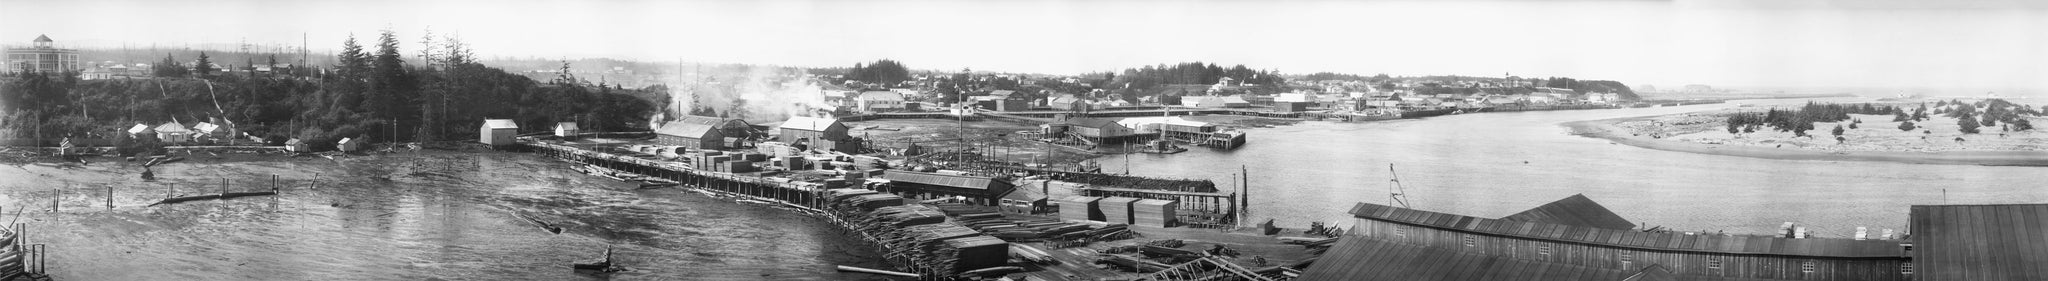 F. W. Sheelor, a pioneer of panoramic photography, took this photograph of Bandon's harbor and mills from the water tower of Moore Mill. -- Courtesy Bandon Historical Society Museum